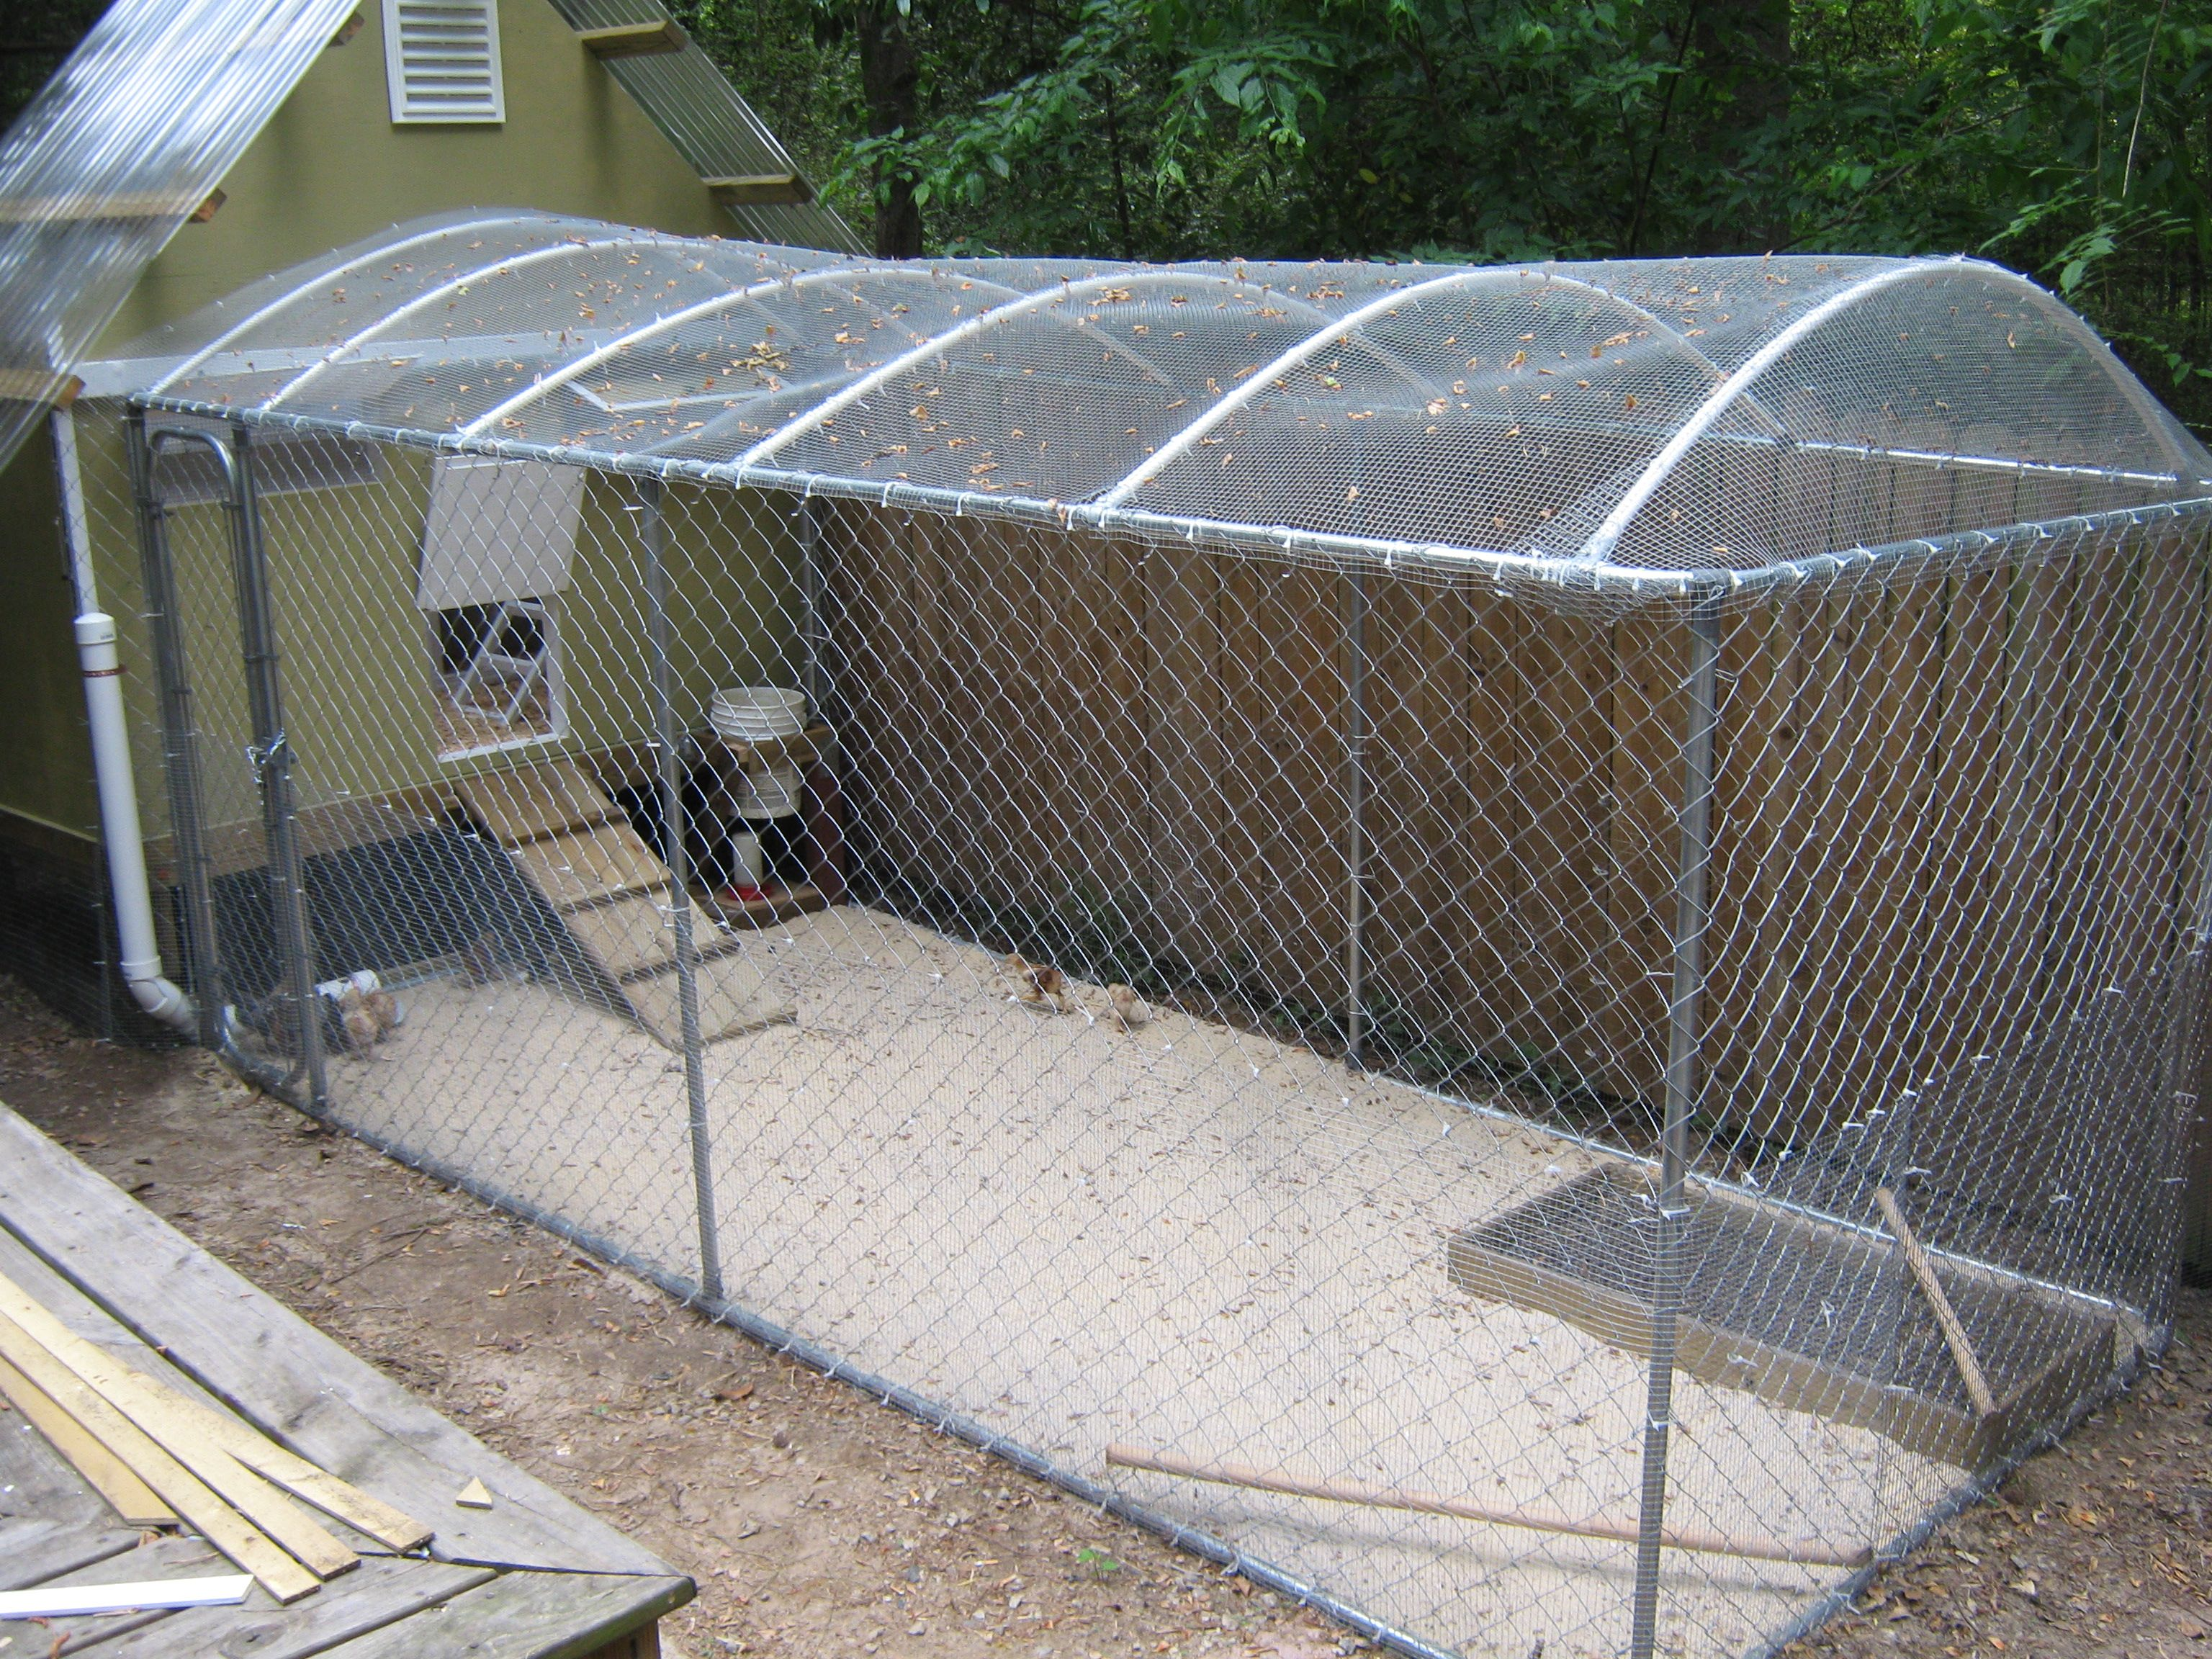 How high should my chicken run fence be | Trampolines, Coops and ...